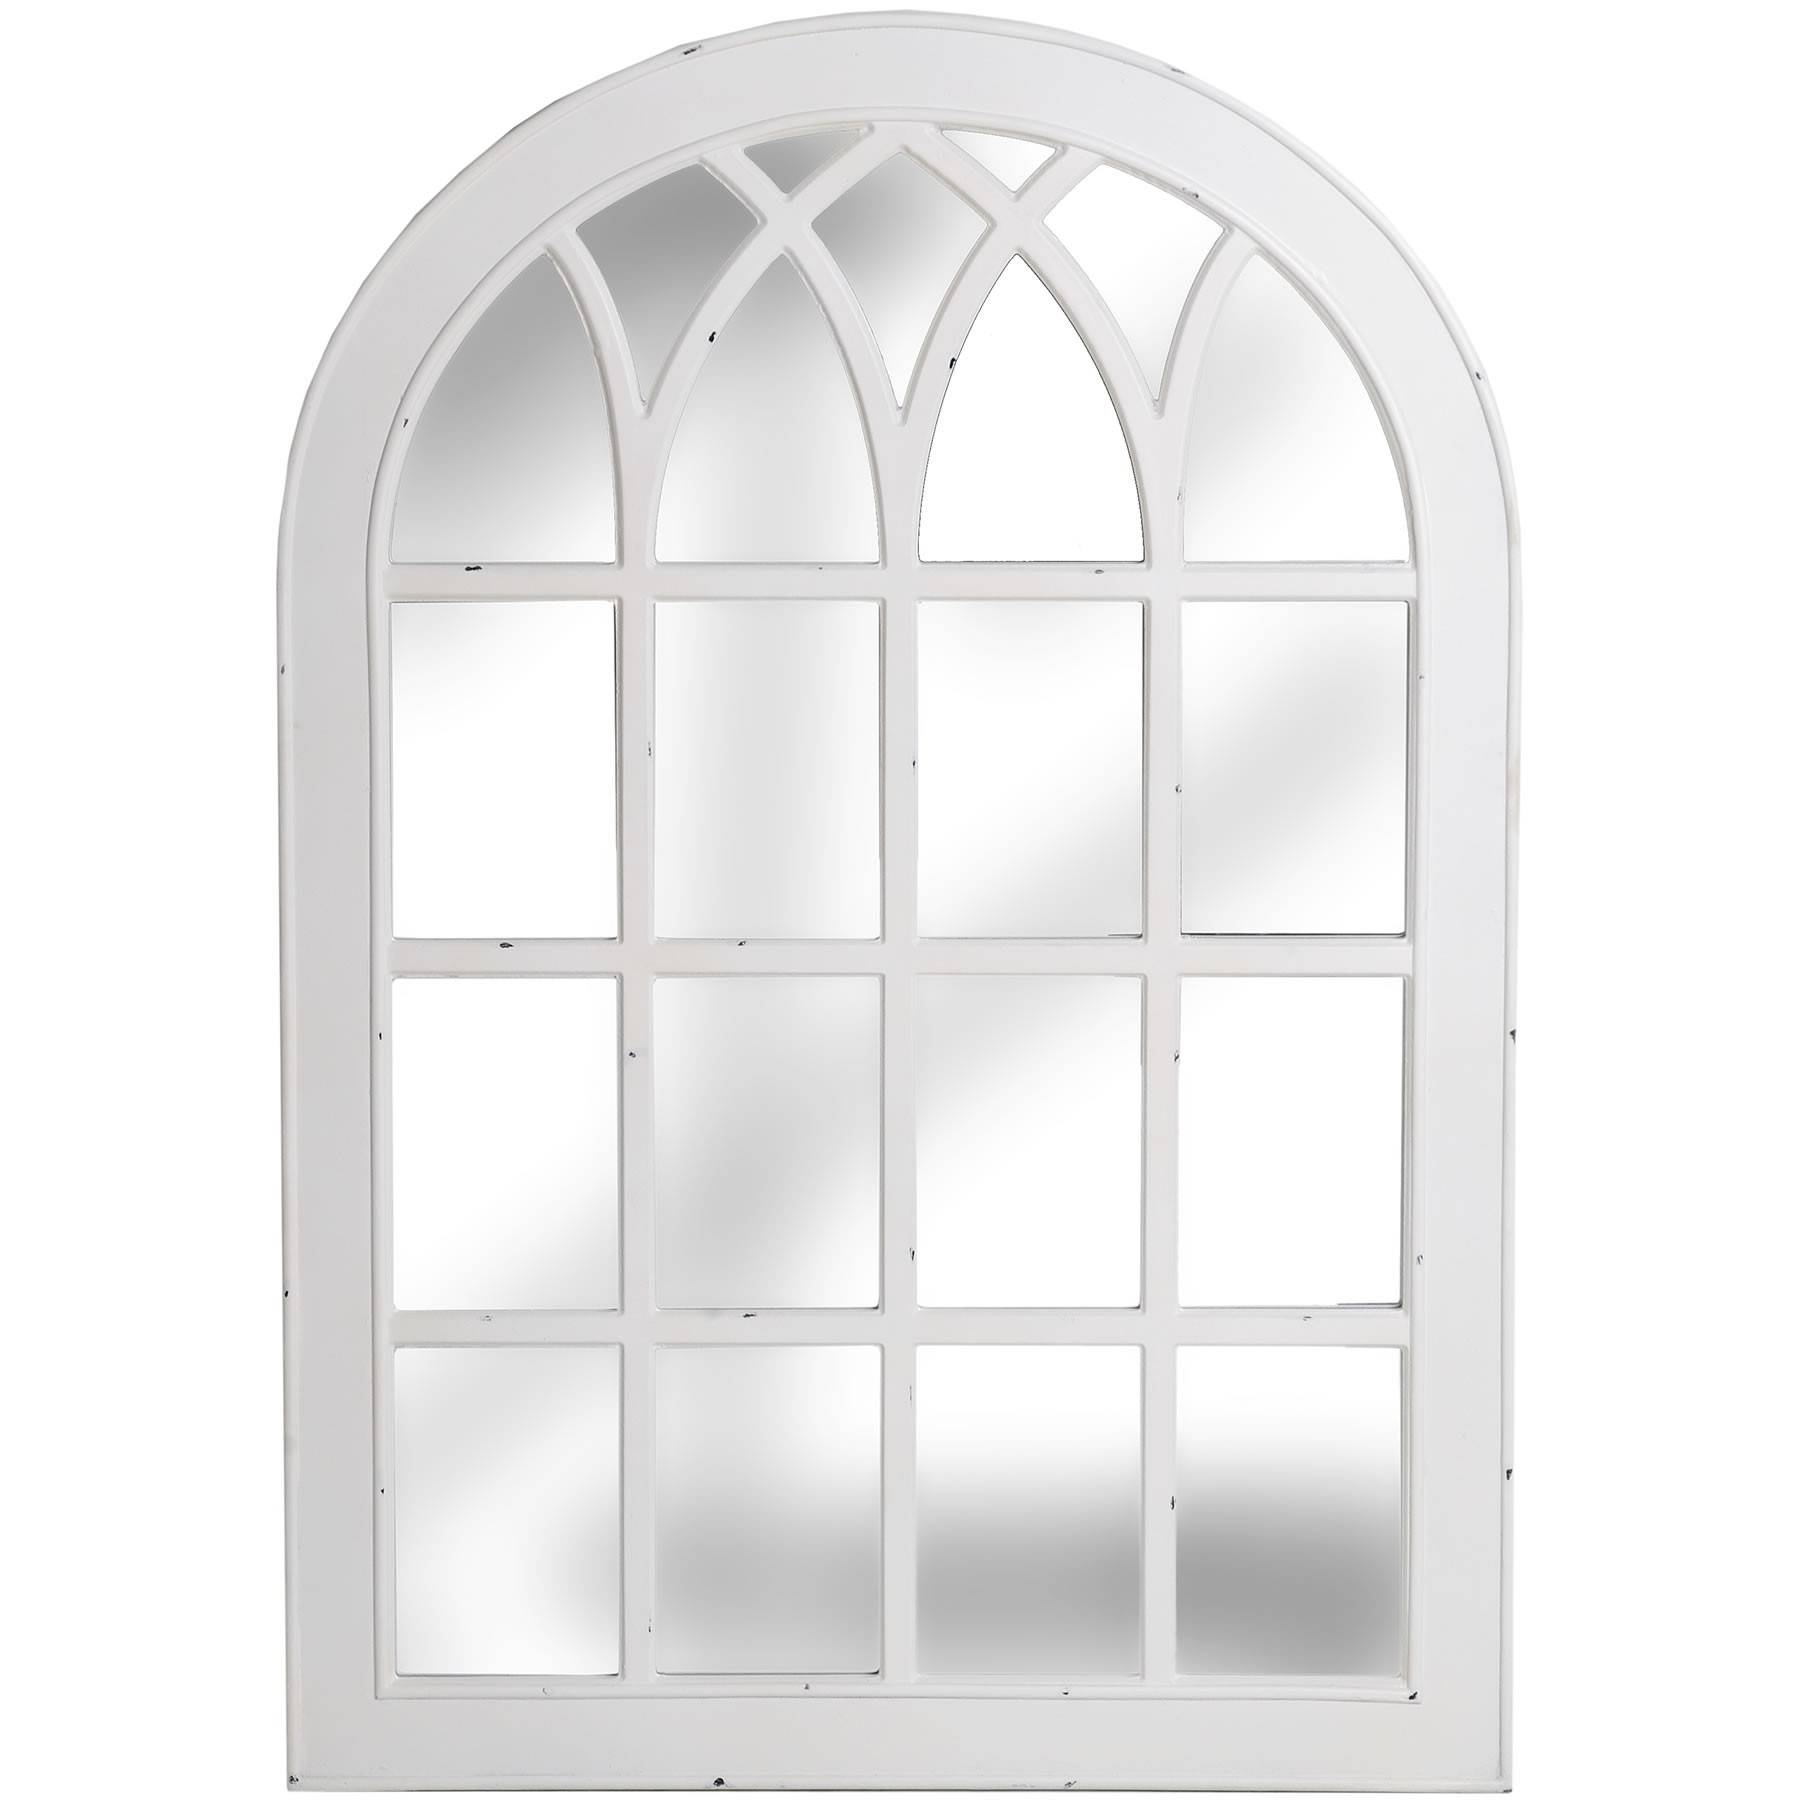 White Arched Window Mirror 29 Outstanding For White Arched Window inside White Arched Window Mirrors (Image 22 of 25)